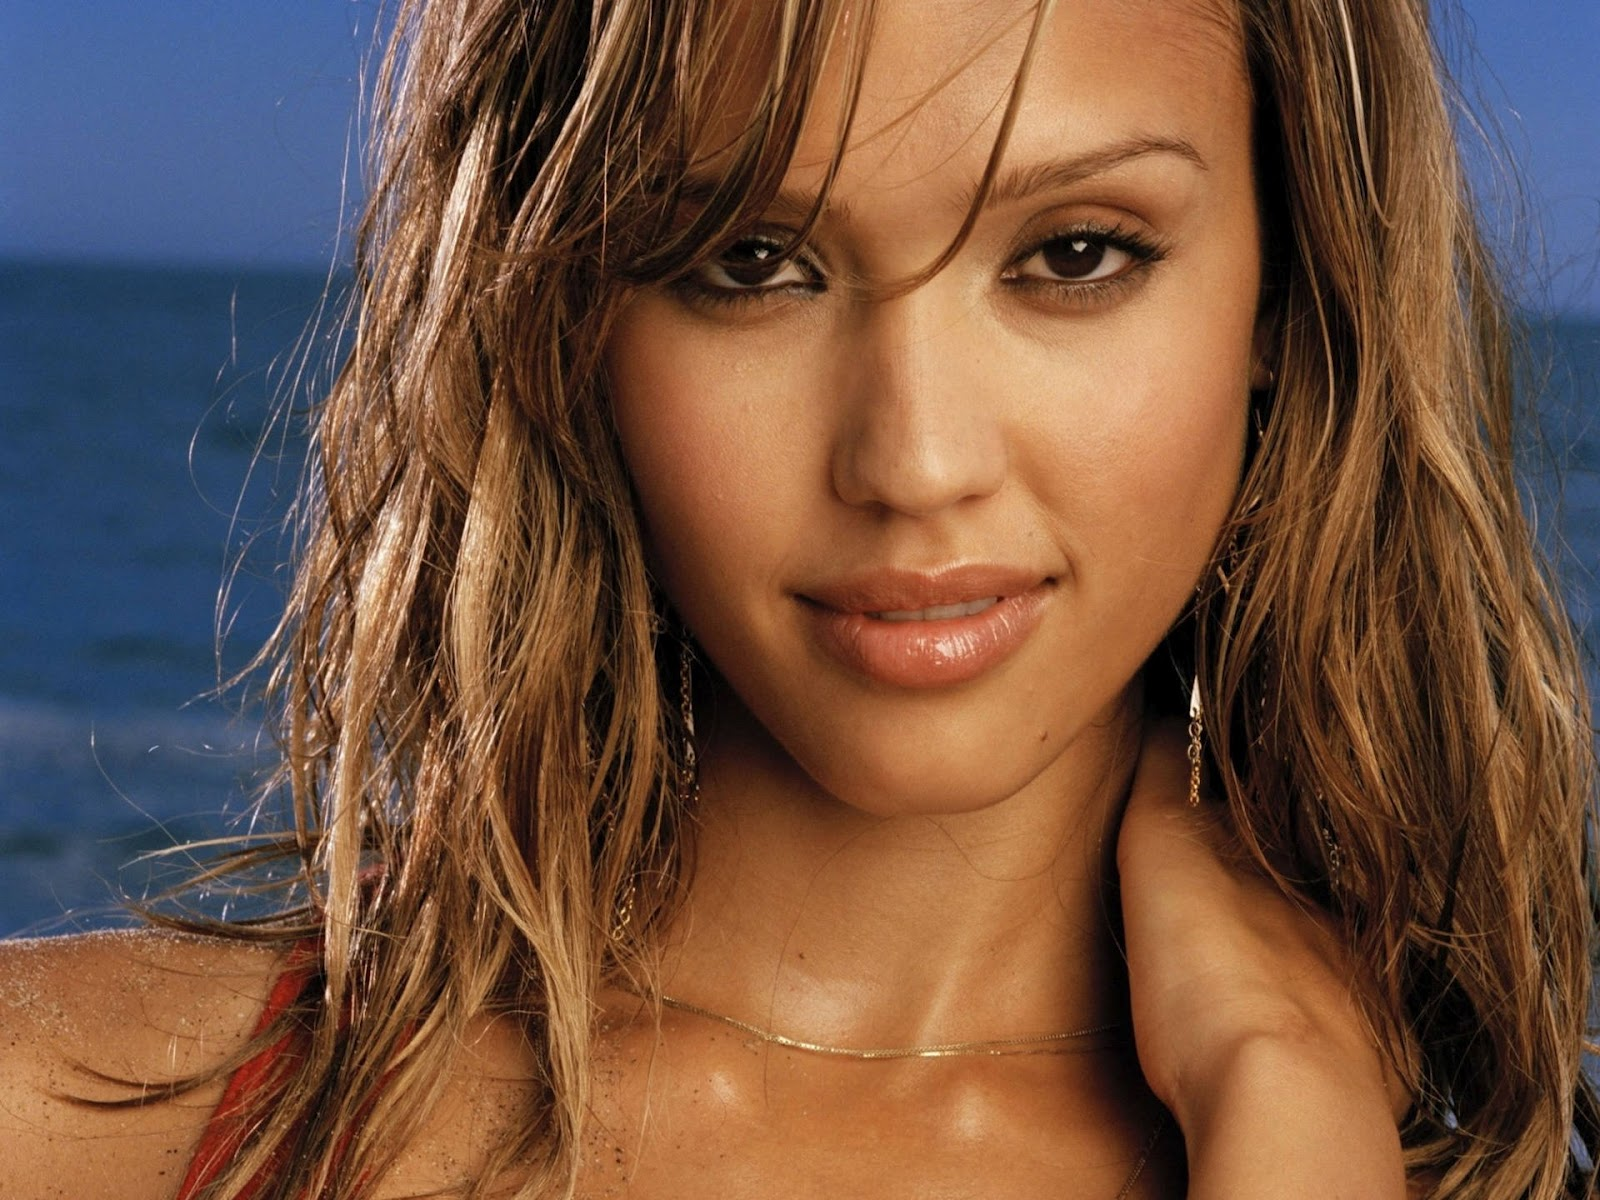 Celebrity Wallpaper: Jessica Alba - A Lady with Attraction.